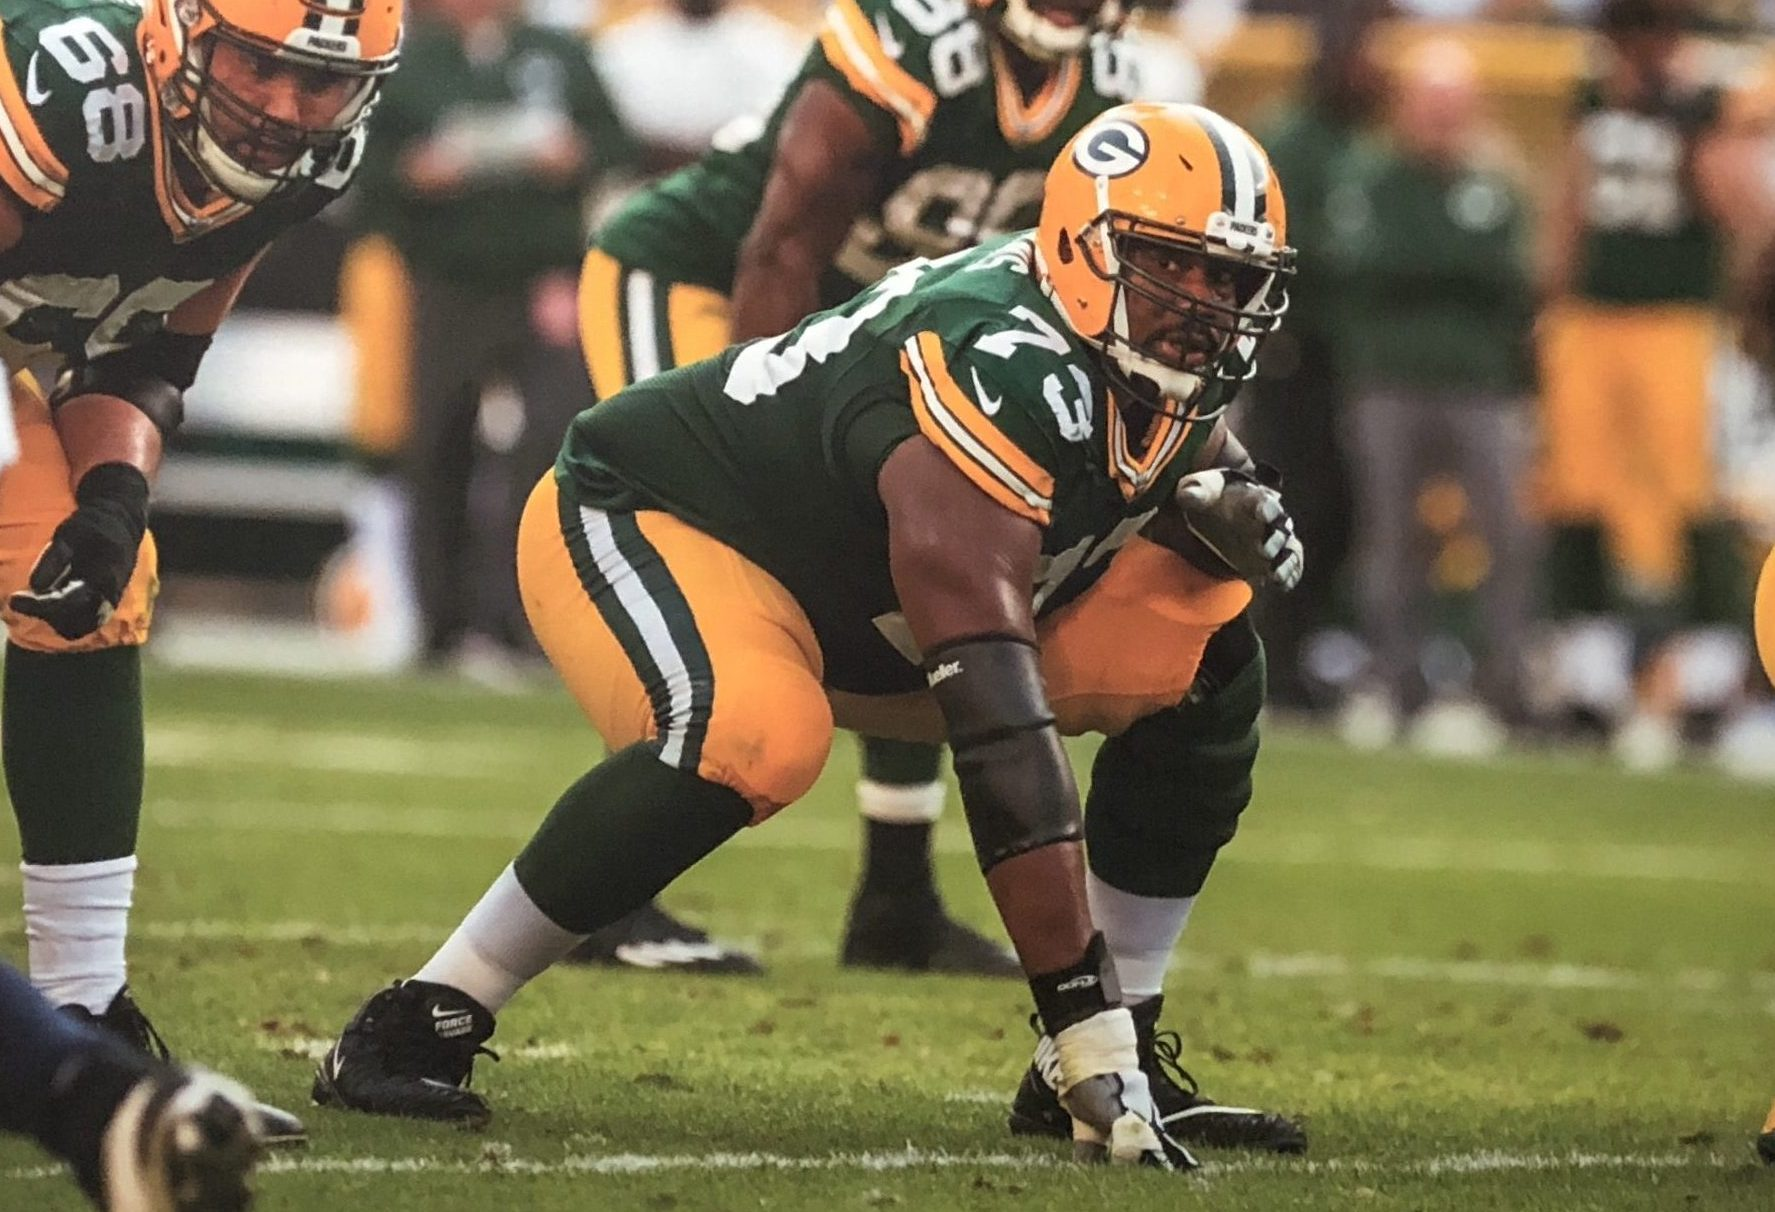 Jahri Evans playing on the Packers offensive line.